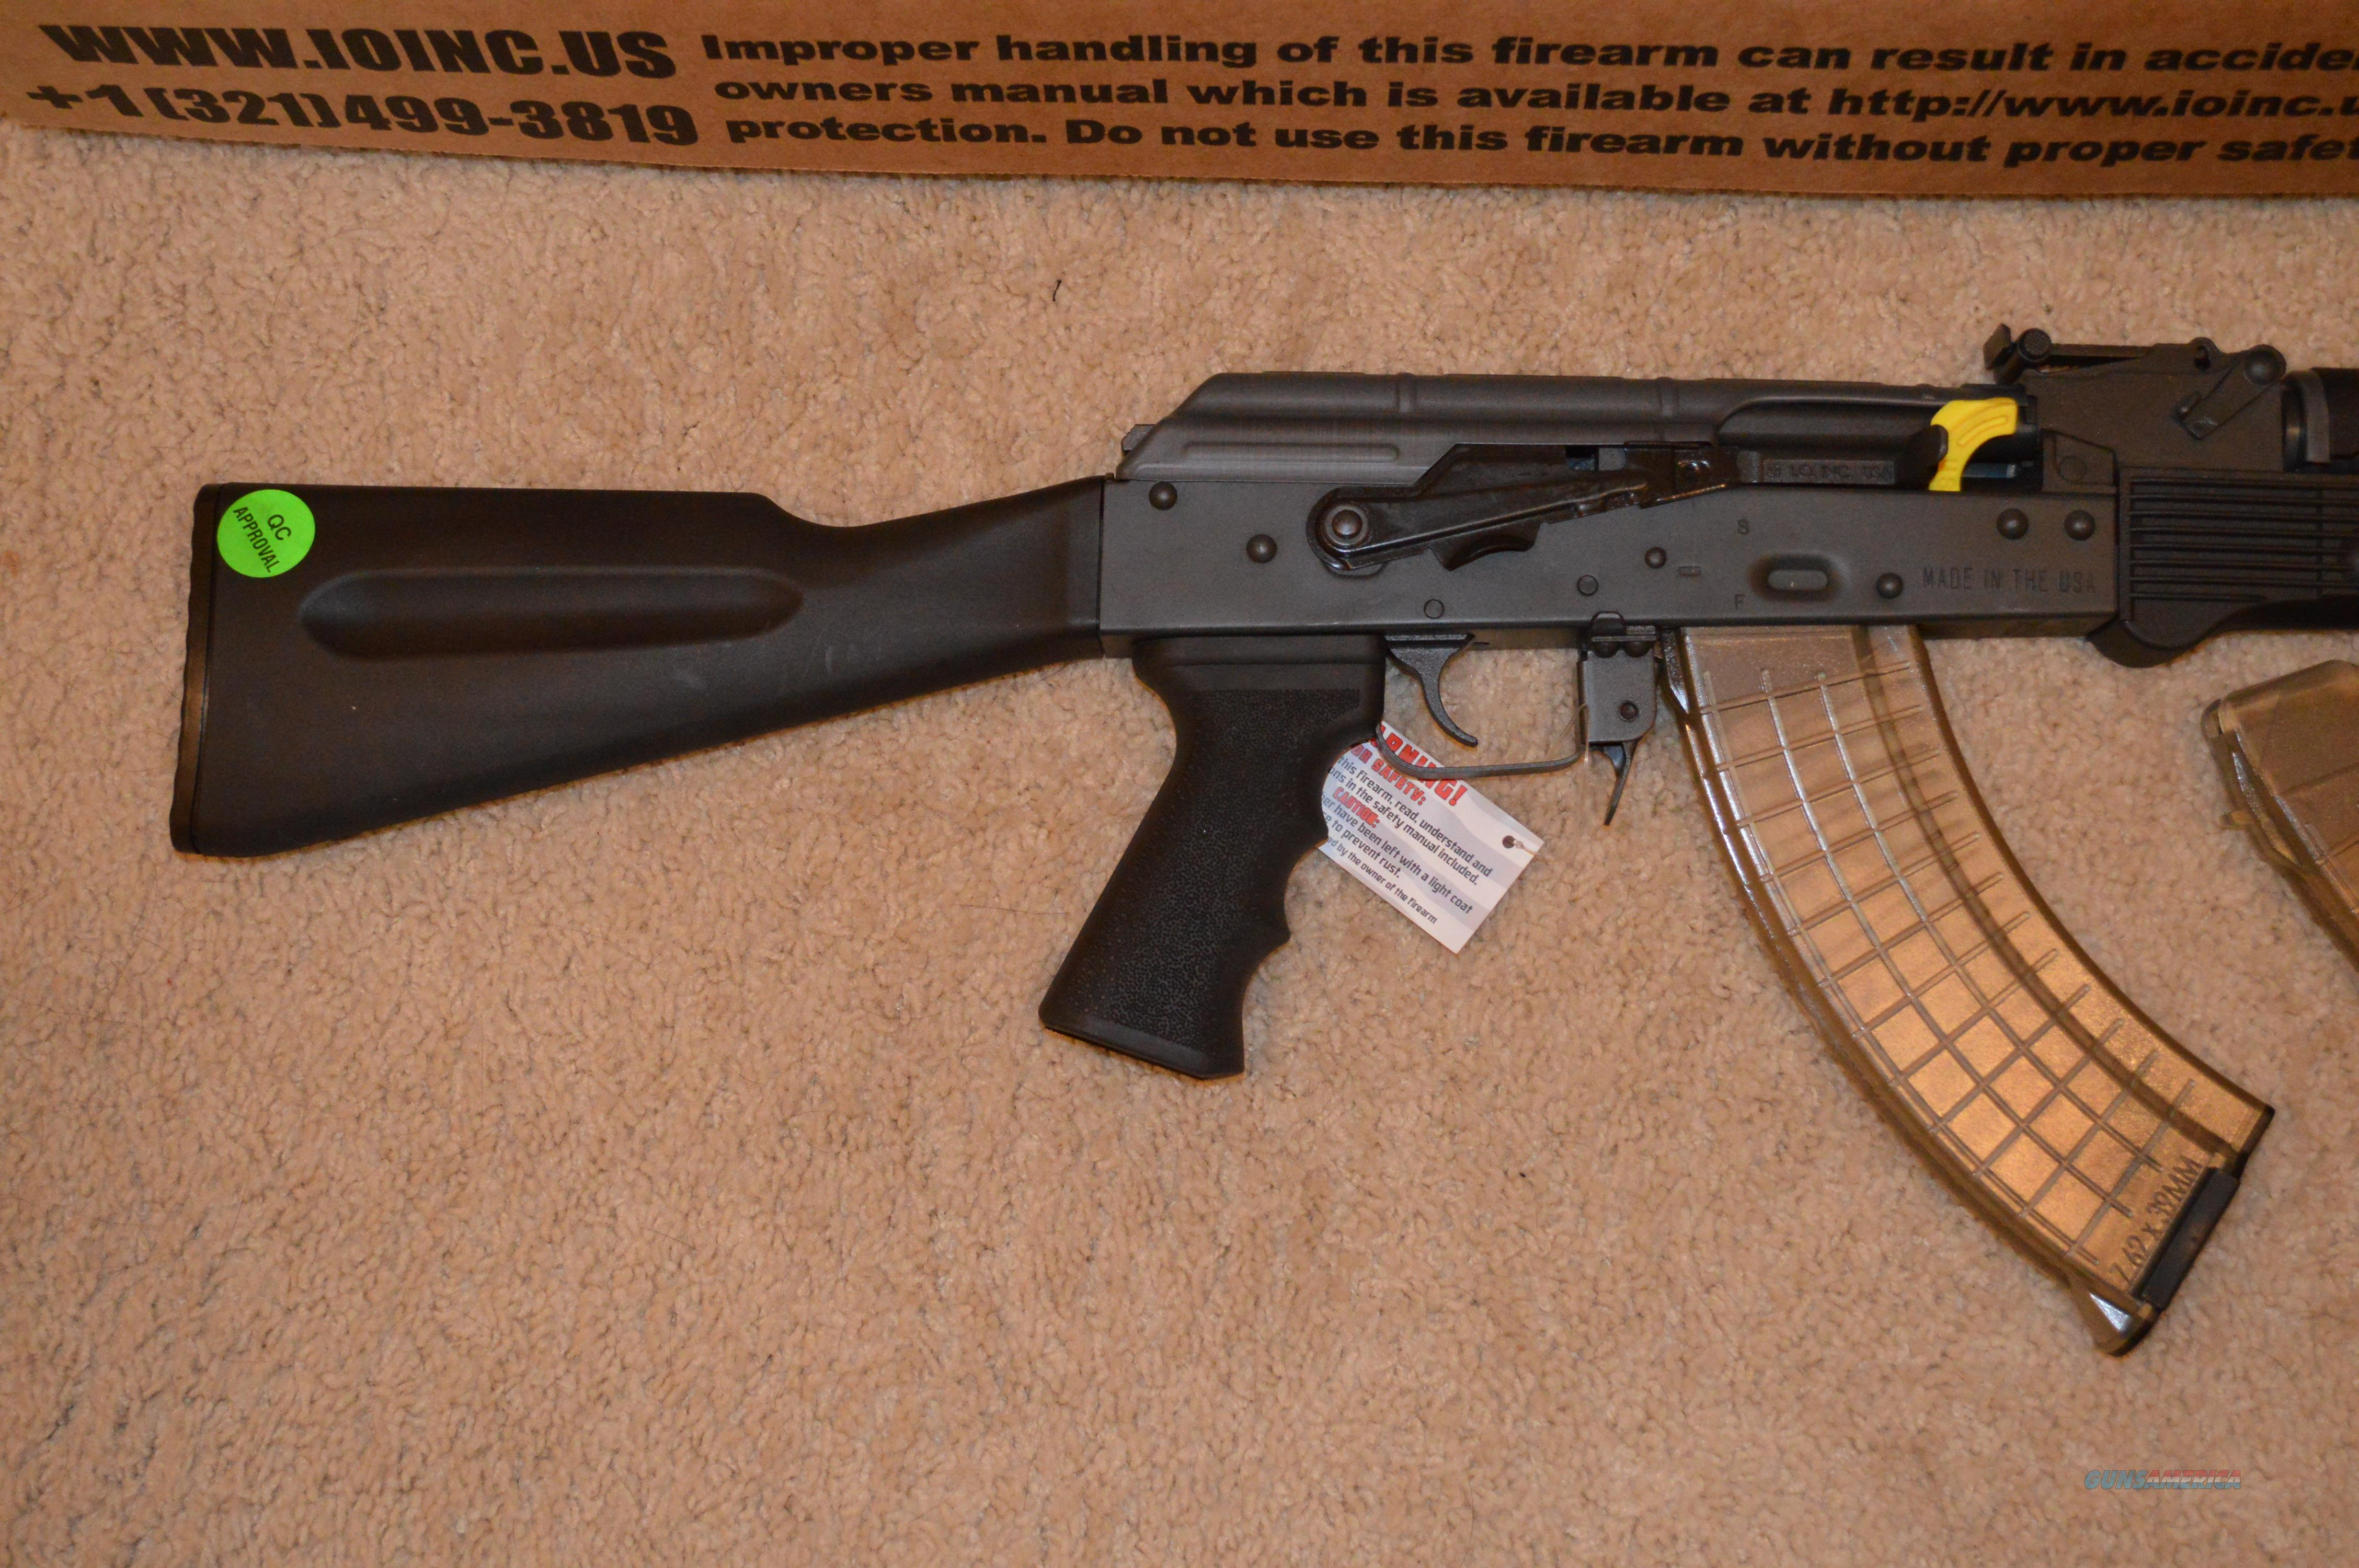 Ak ak 47 for sale by owner - 11611144 Jpg